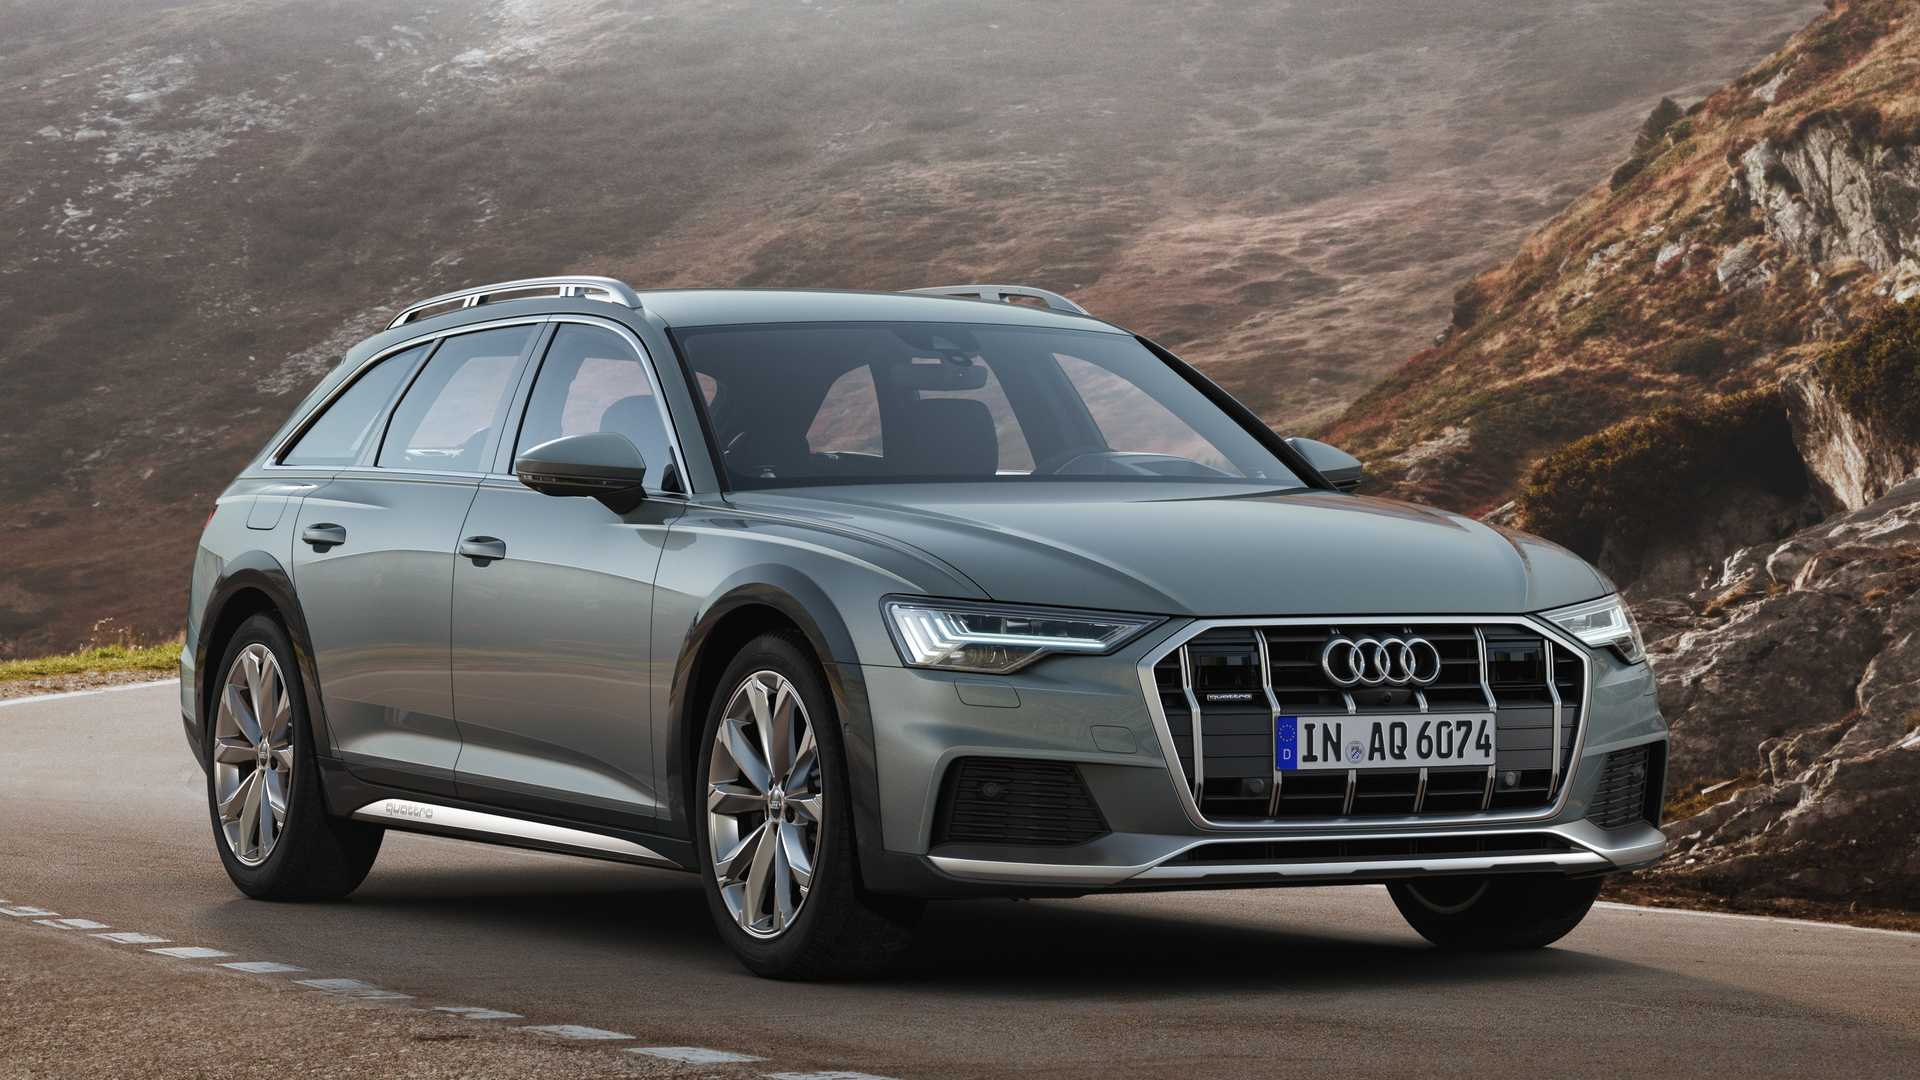 2020 Audi A6 allroad Wagon Front View